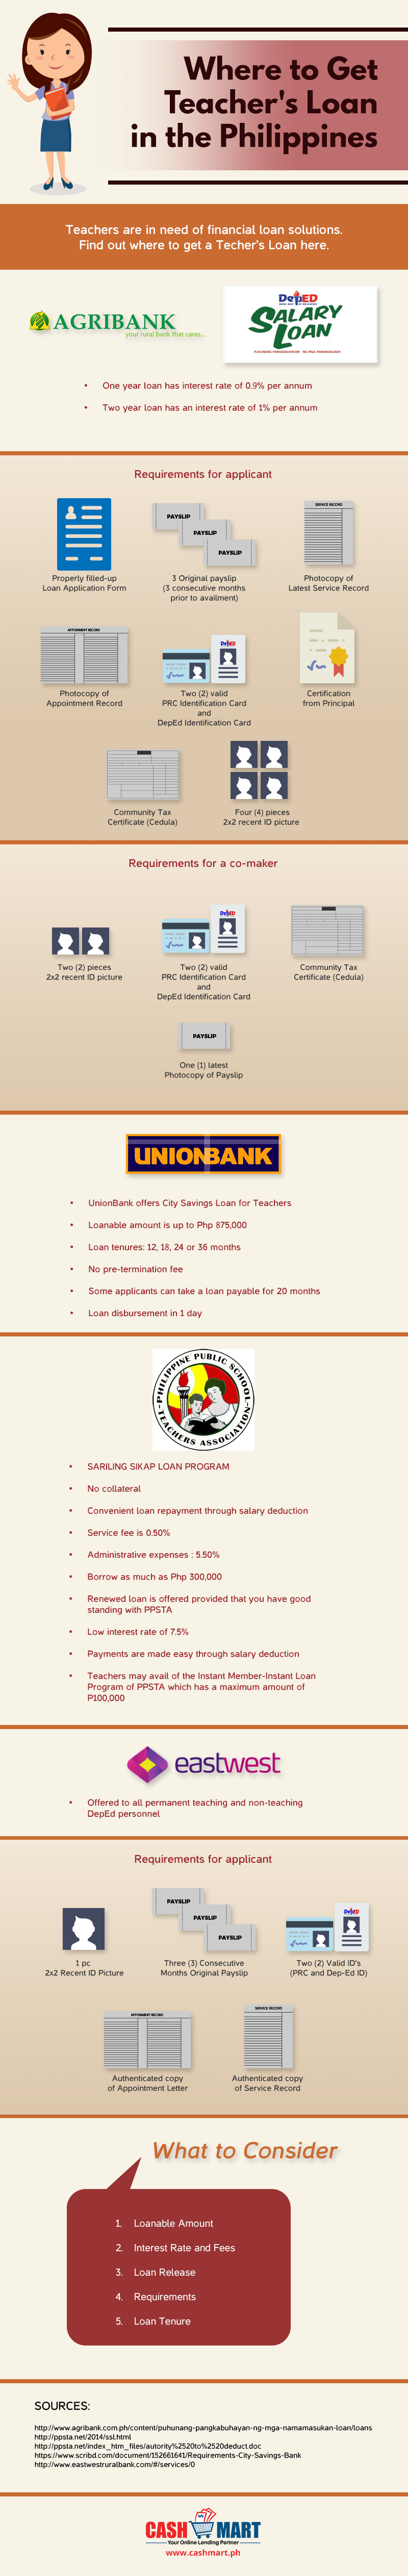 where-to-get-teacher_s-loan-in-philippines